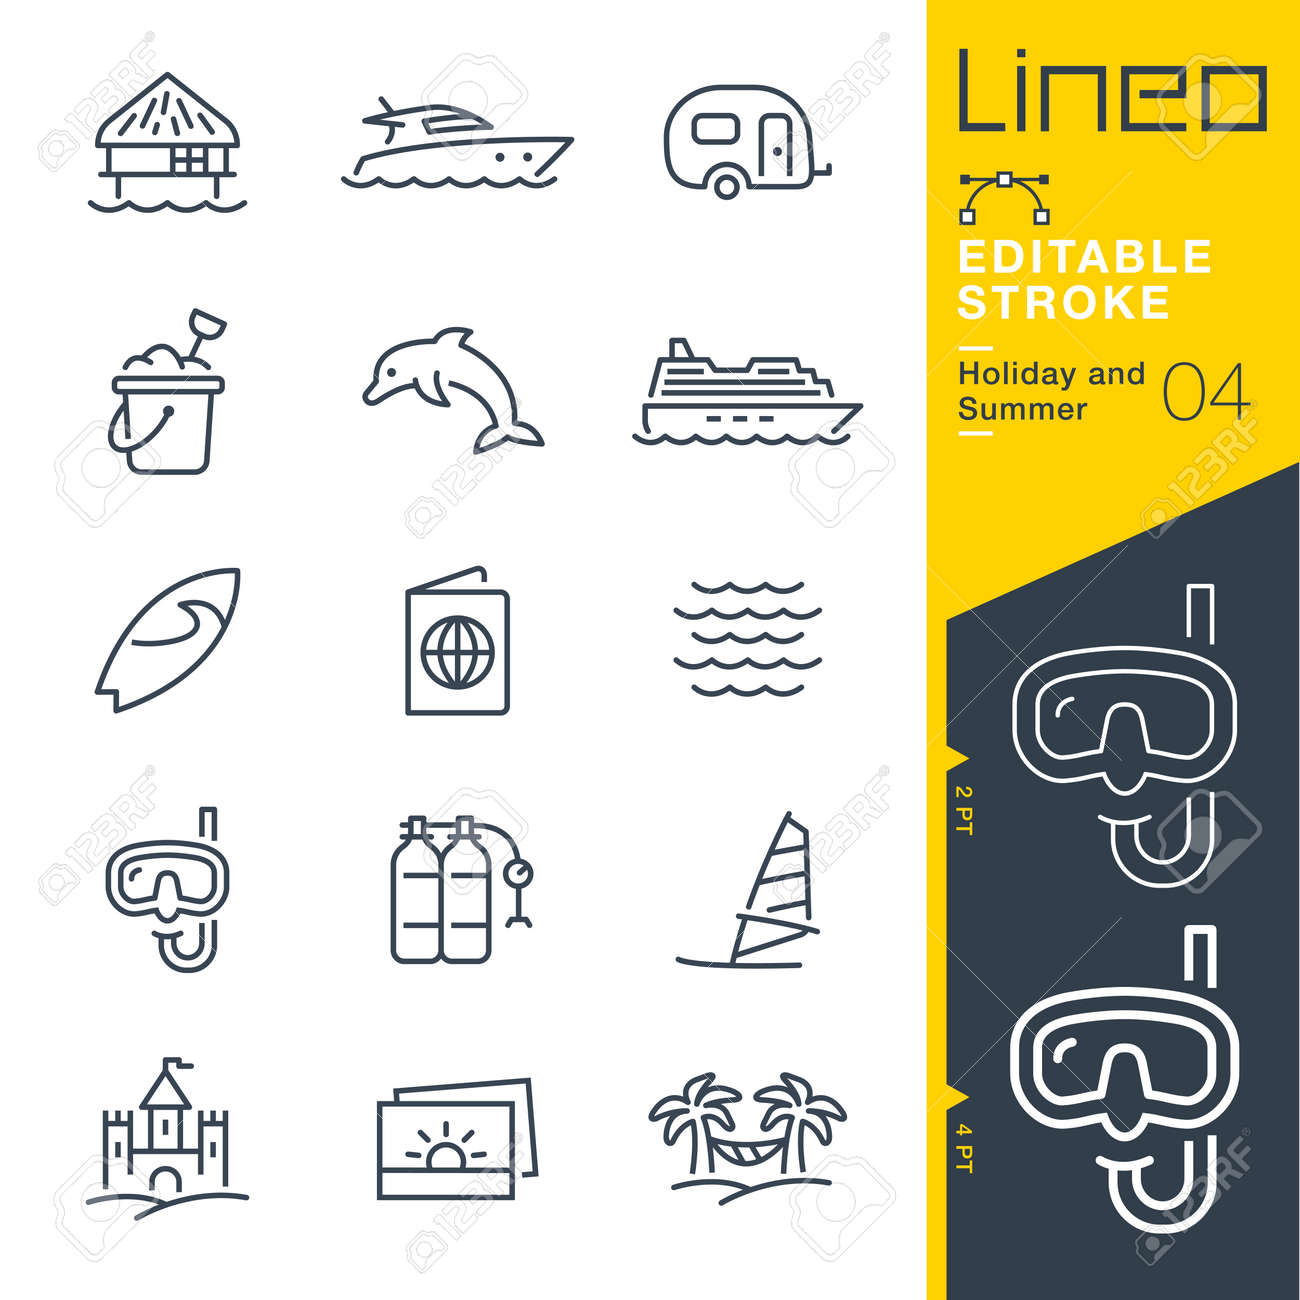 Lineo Editable Stroke - Holiday and Summer line icon Vector Icons - Adjust stroke weight - Change to any color - 86056261